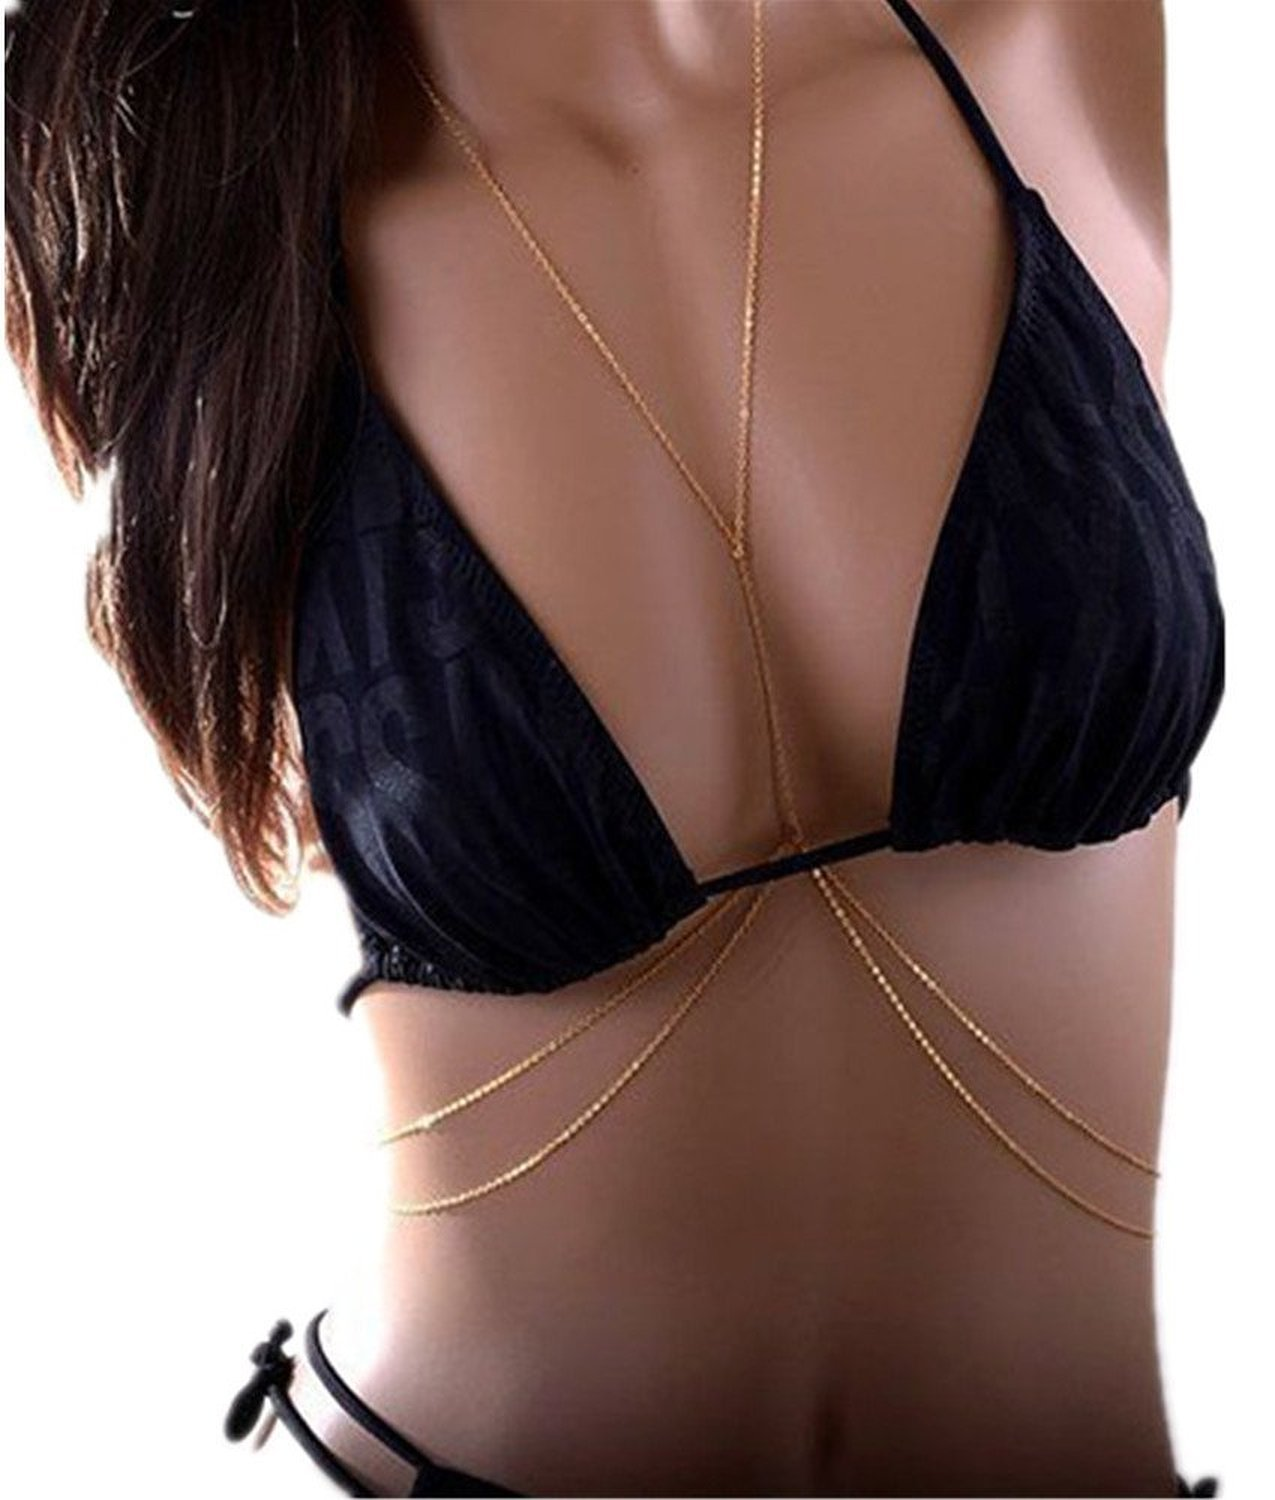 Bestjybt Fashion Women Sexy Golden Body Belly Waist Charm Chain Bikini Beach Pendant Necklace